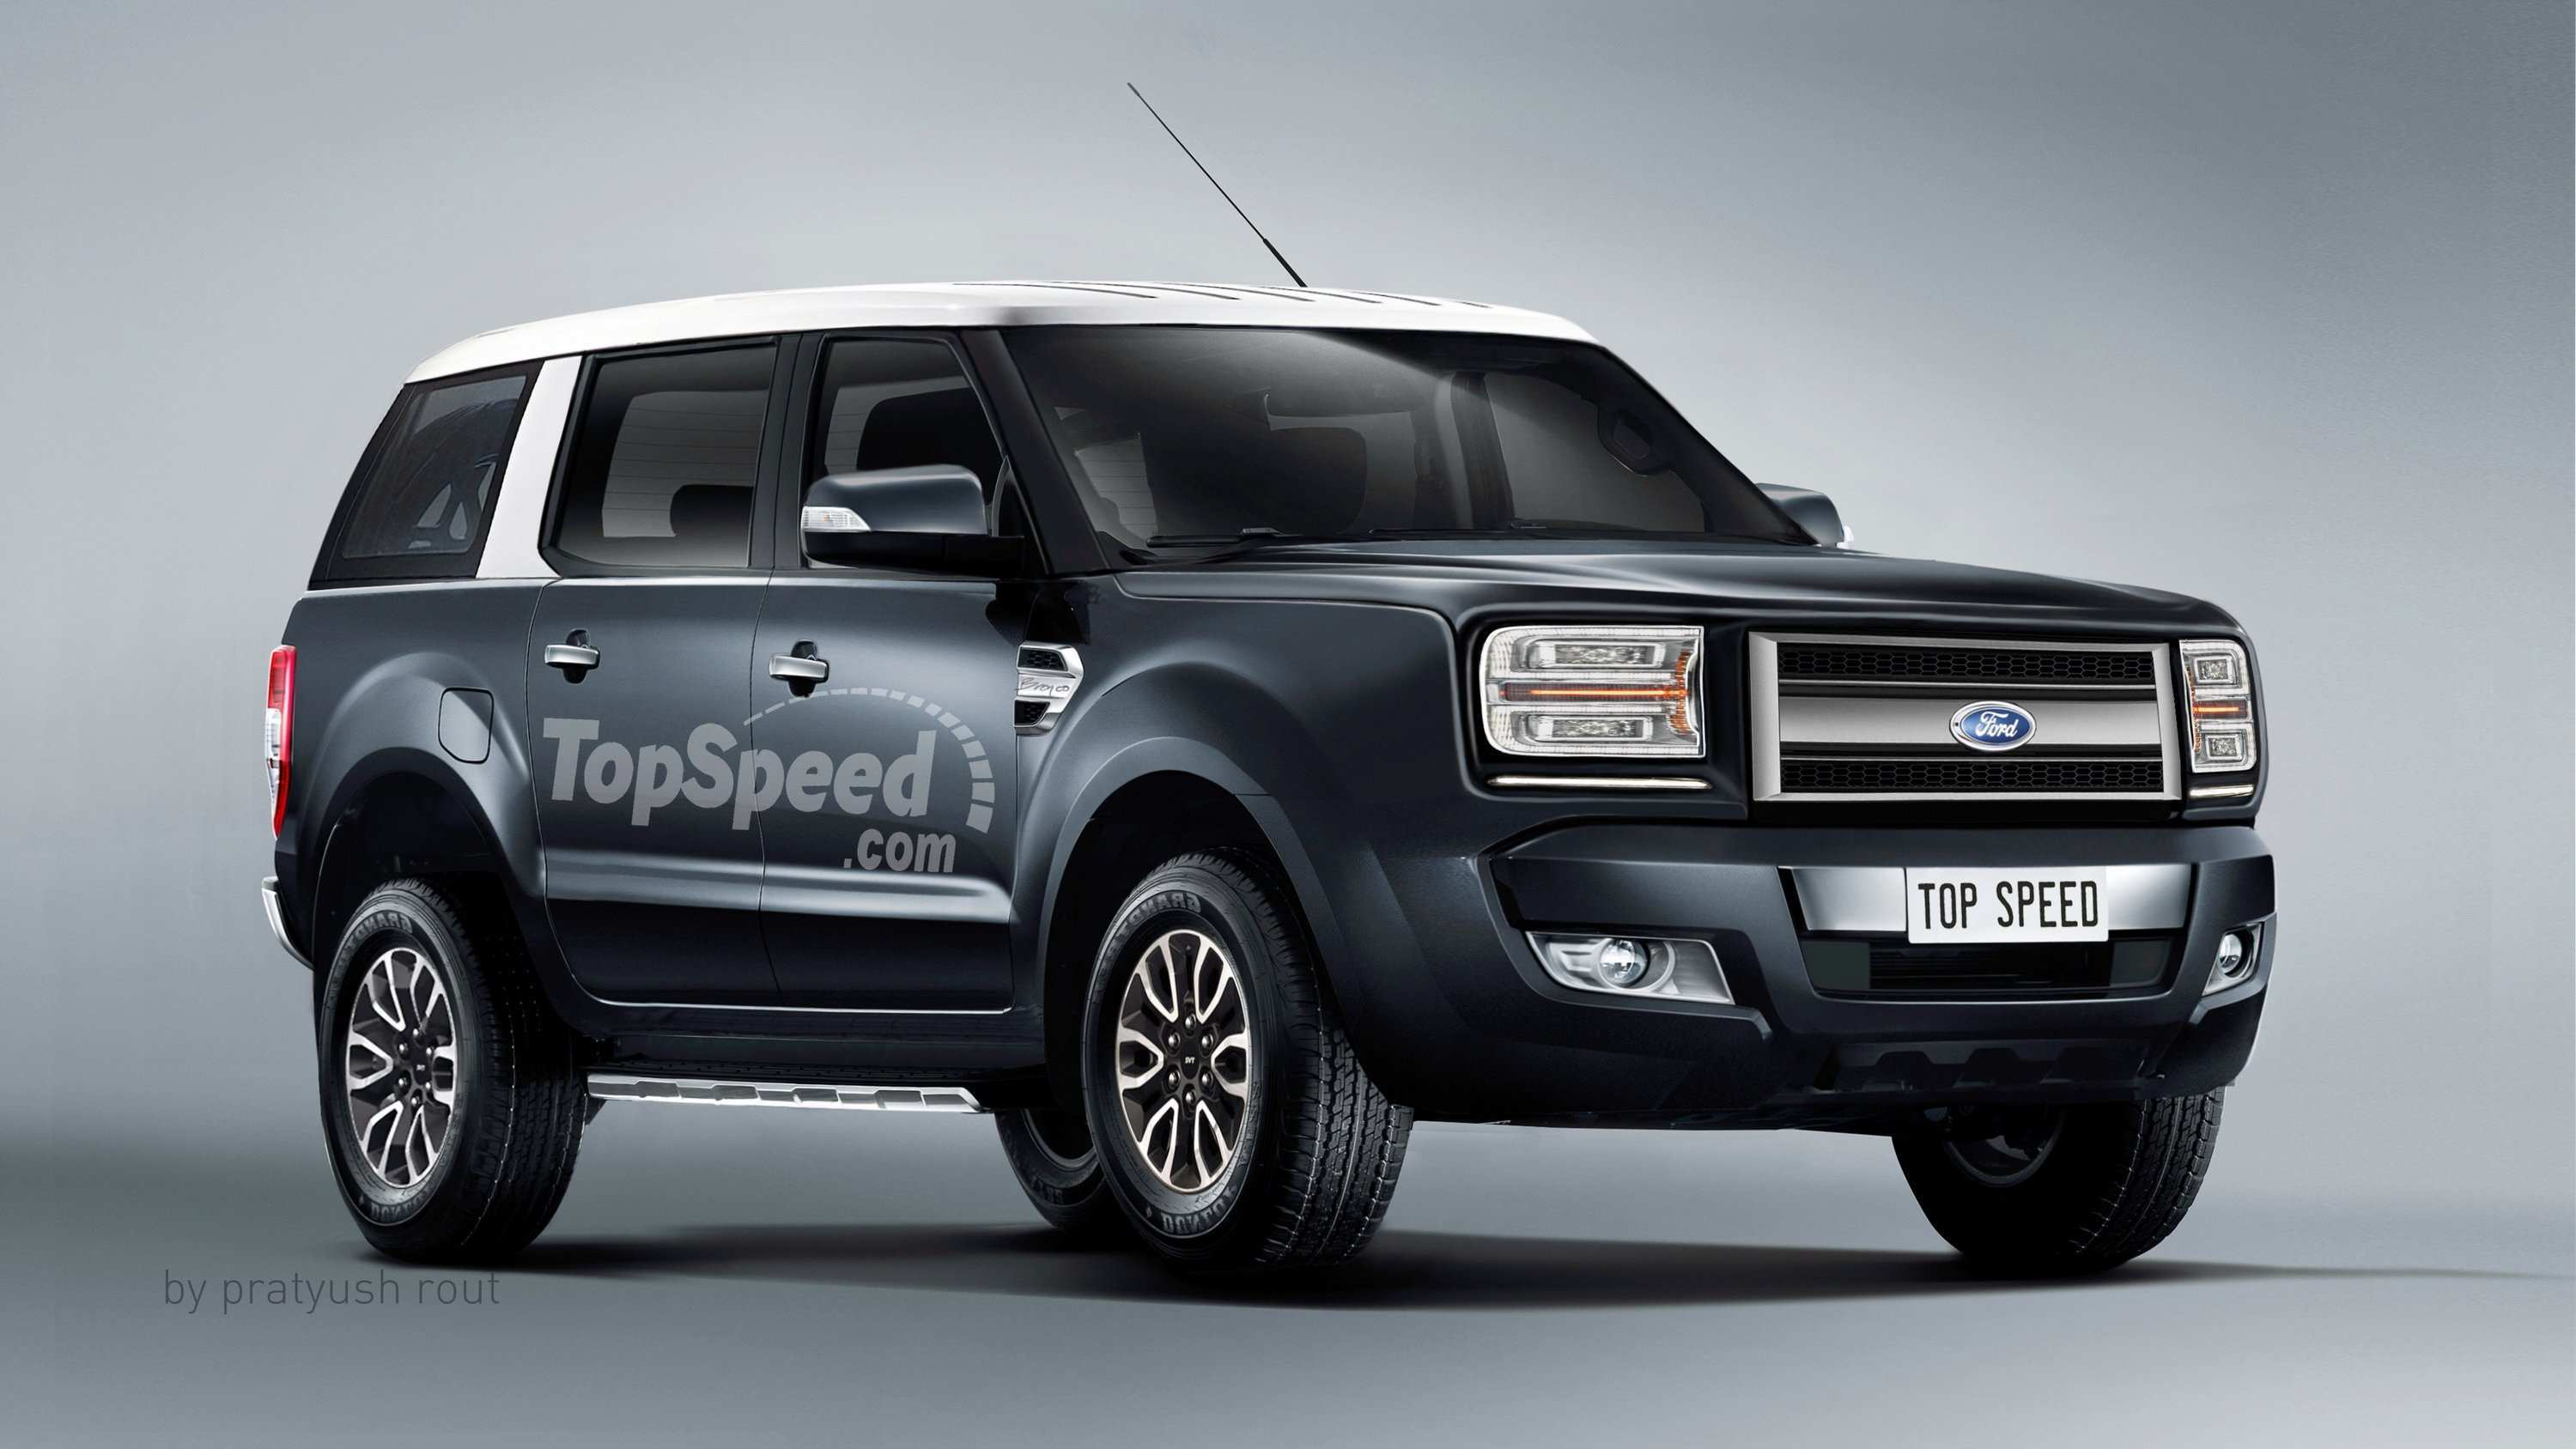 86 The 2020 Ford Bronco Wallpaper Concept